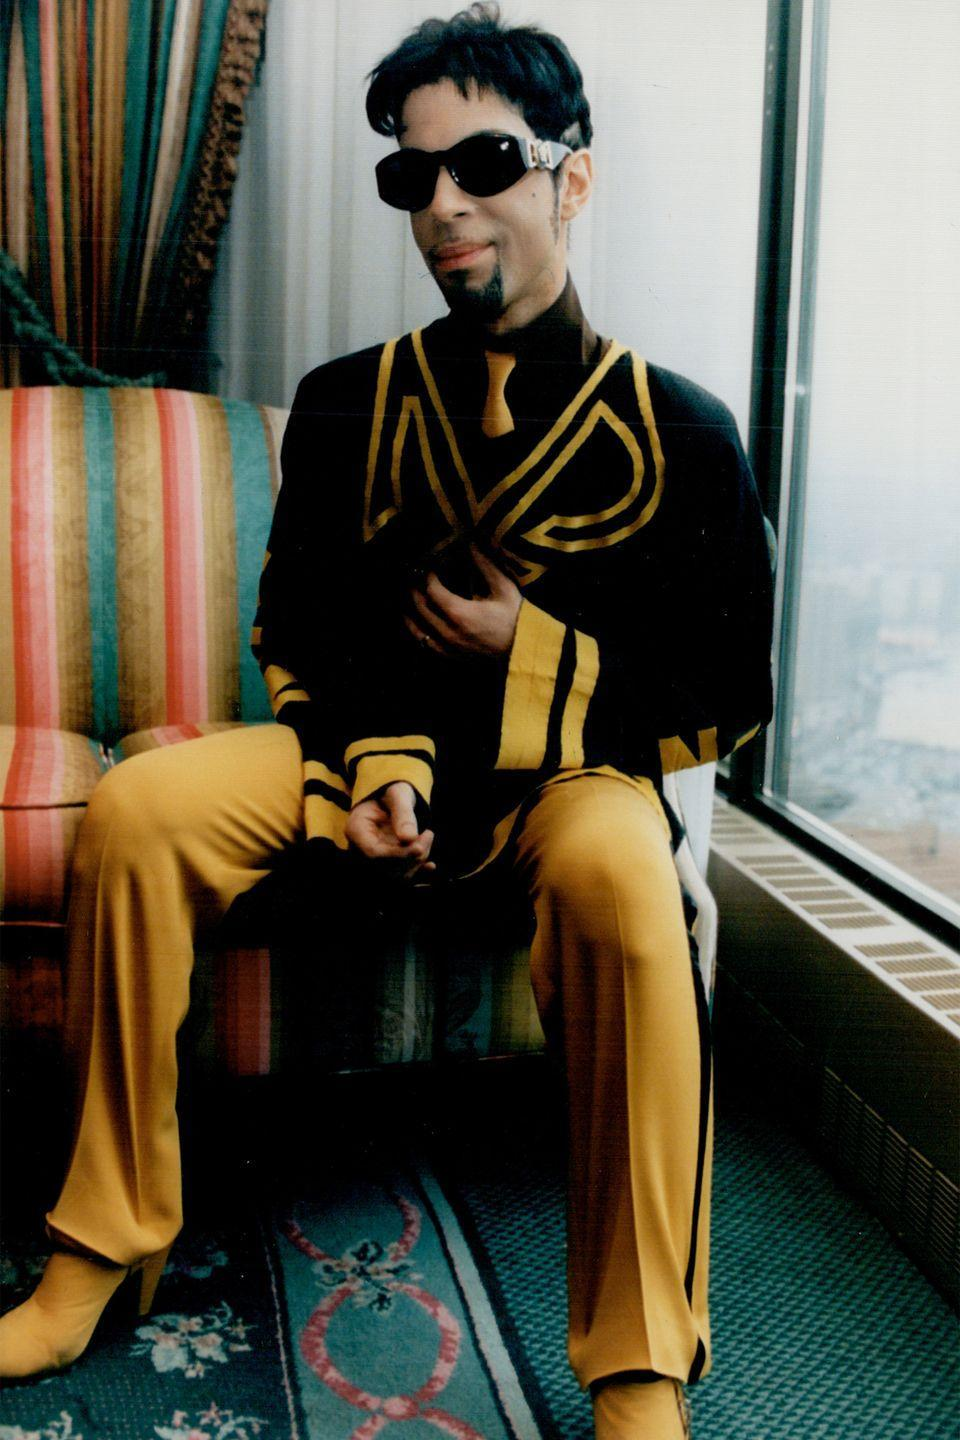 <p>Prince photographed in a hotel room in Toronto</p>